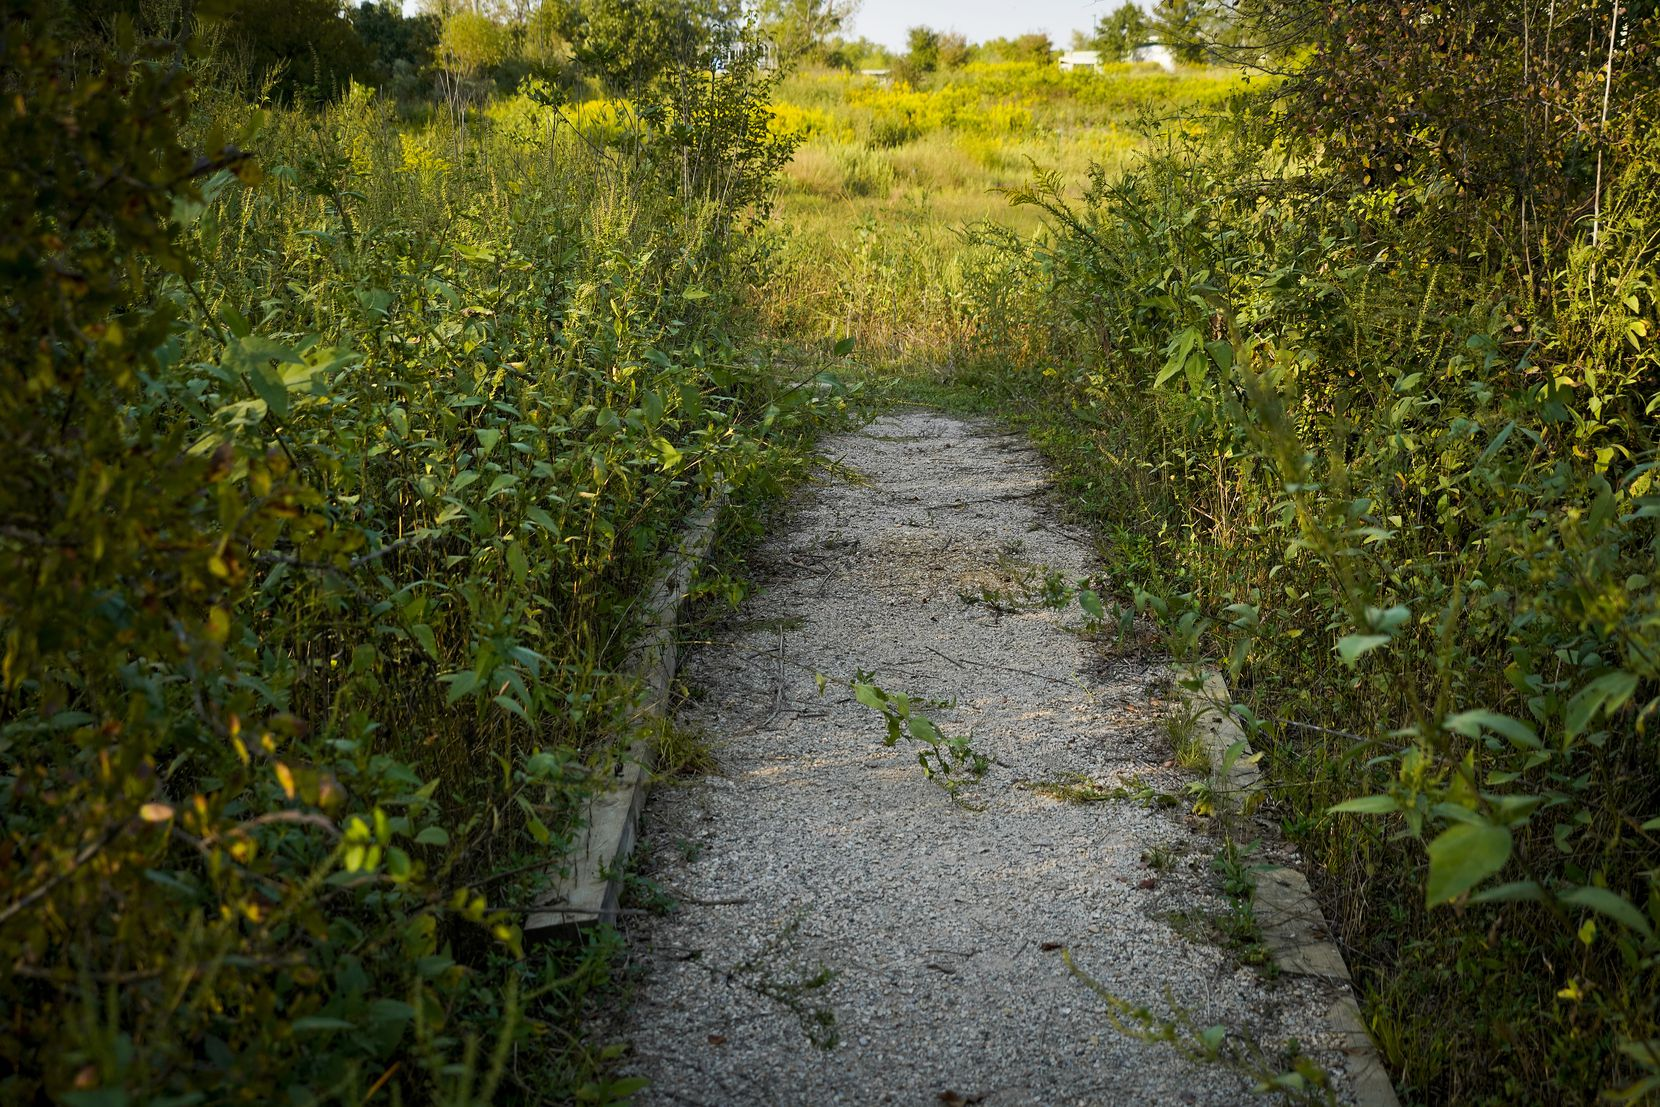 A pathway on the Primitive Pond Trail cuts through grass at the Trinity River Audubon Center.